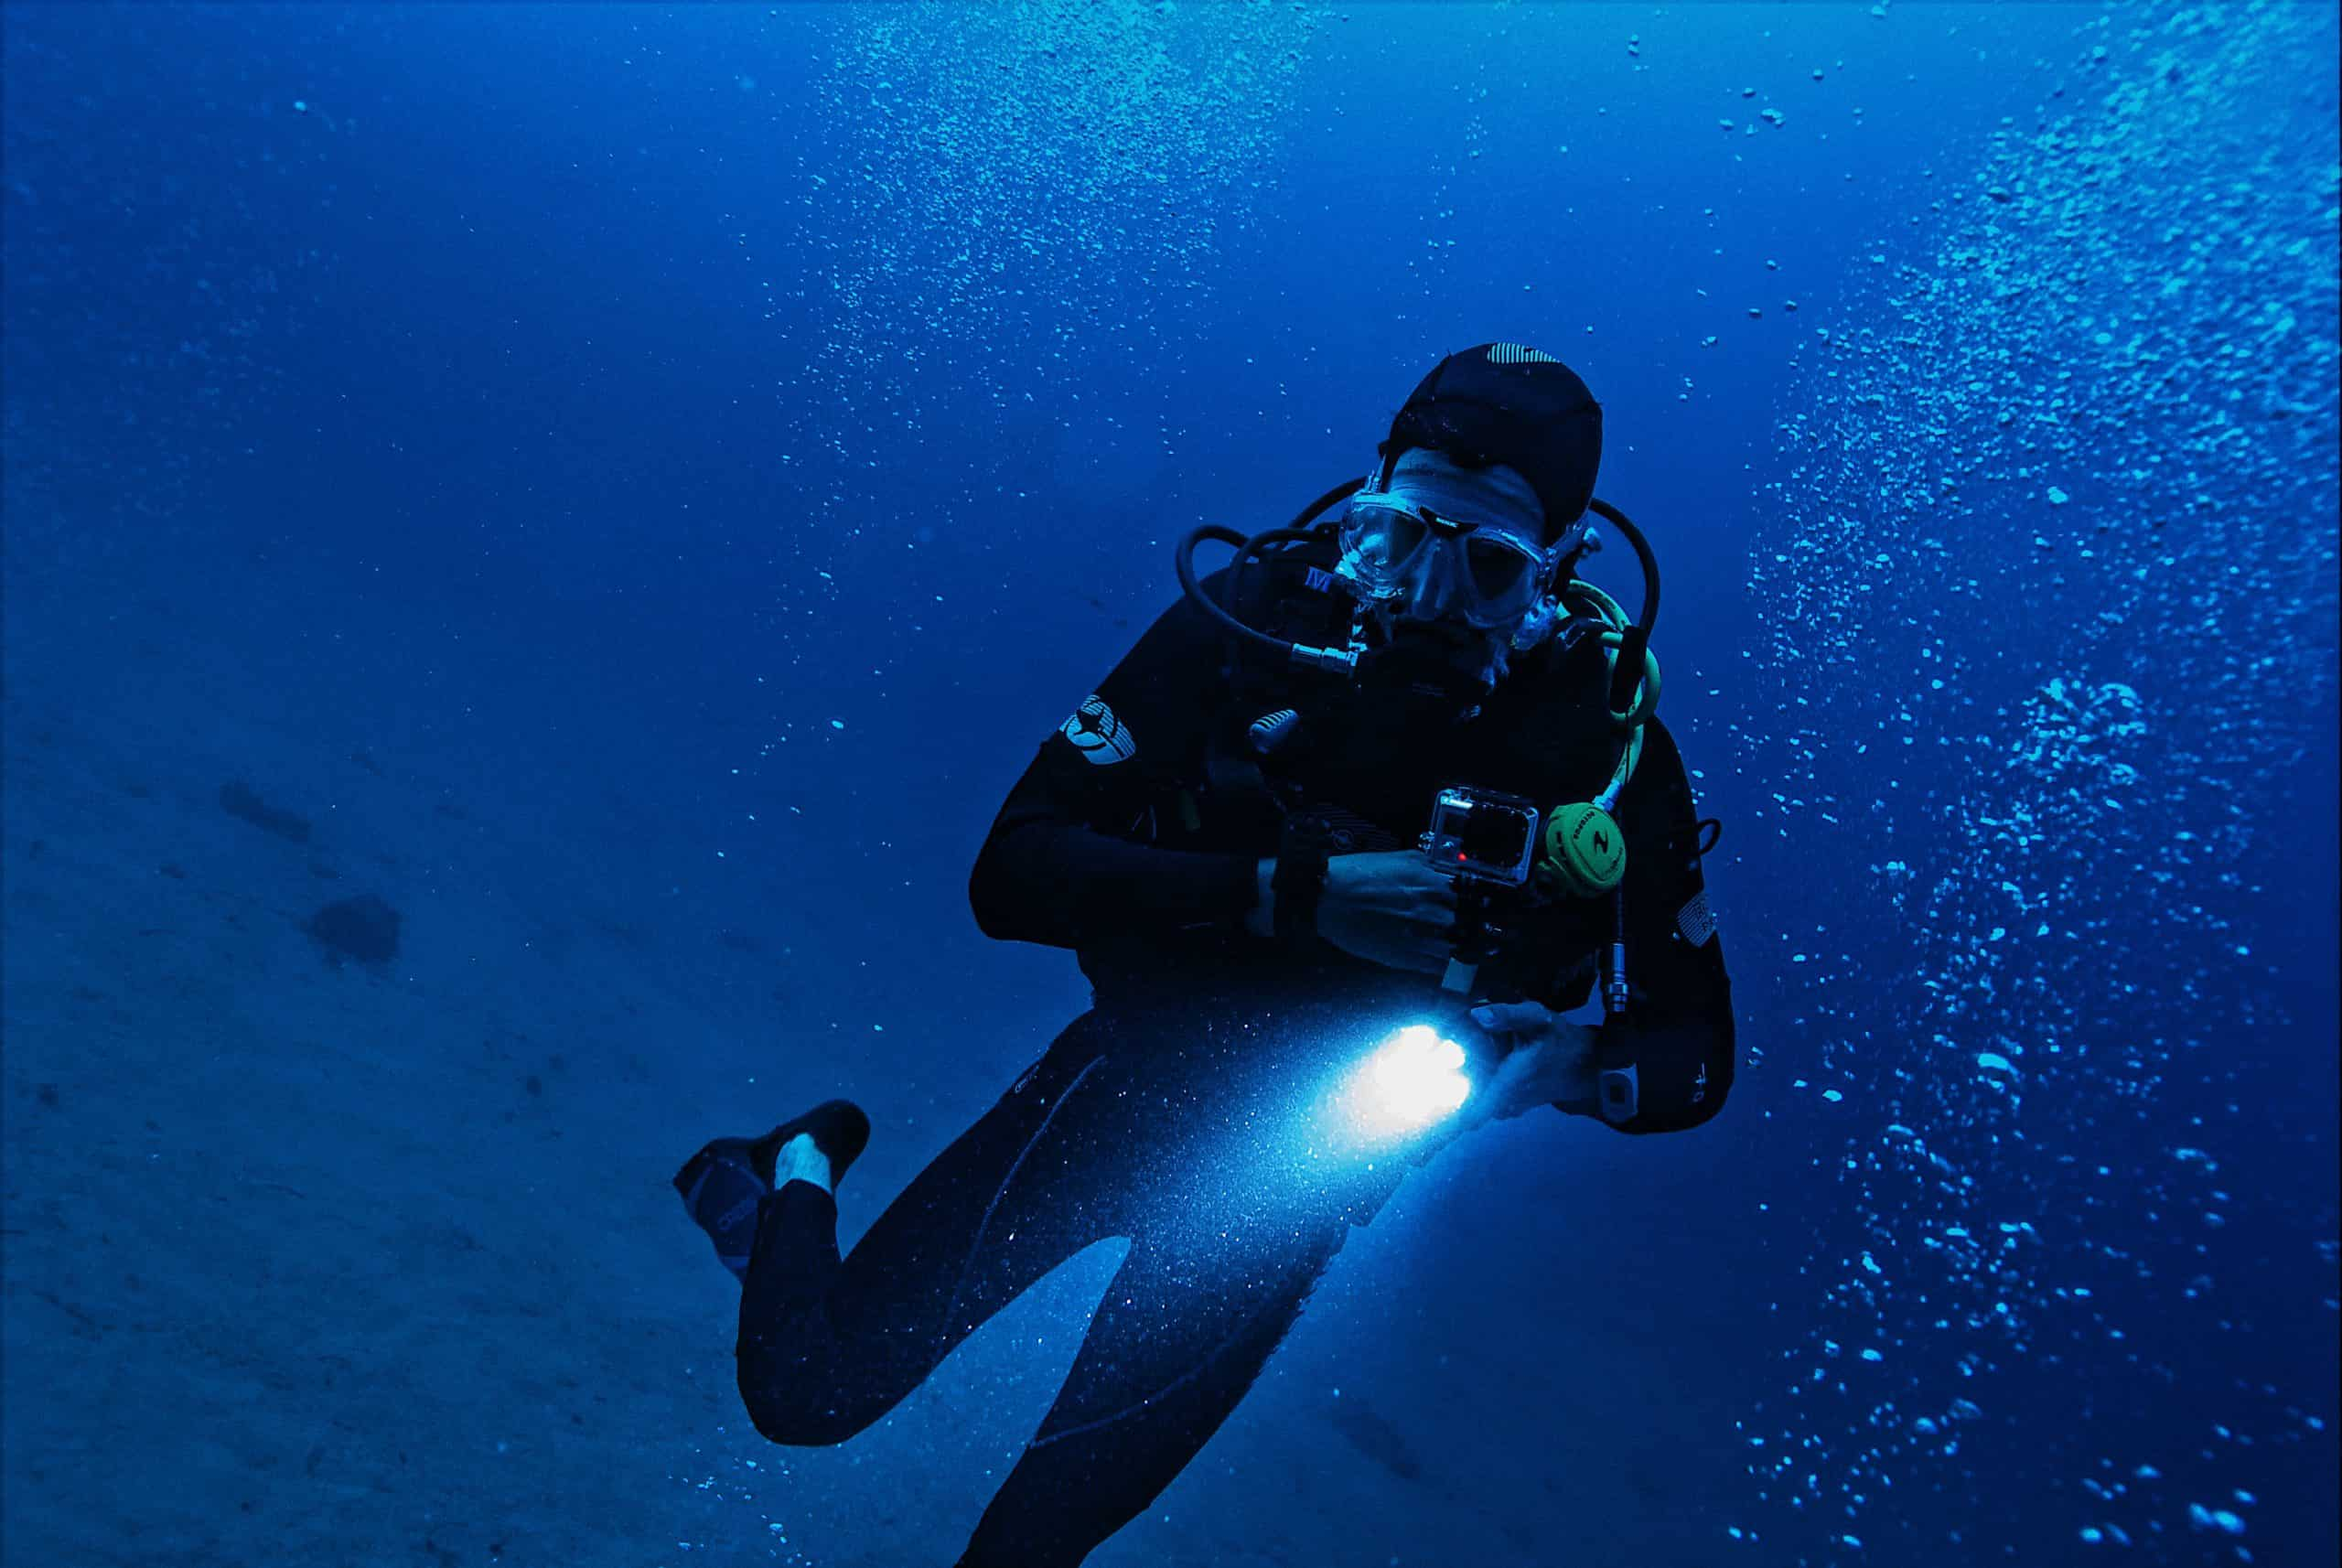 Buoyancy Tips For Scuba Diving: Things To Know For Buoyancy Control